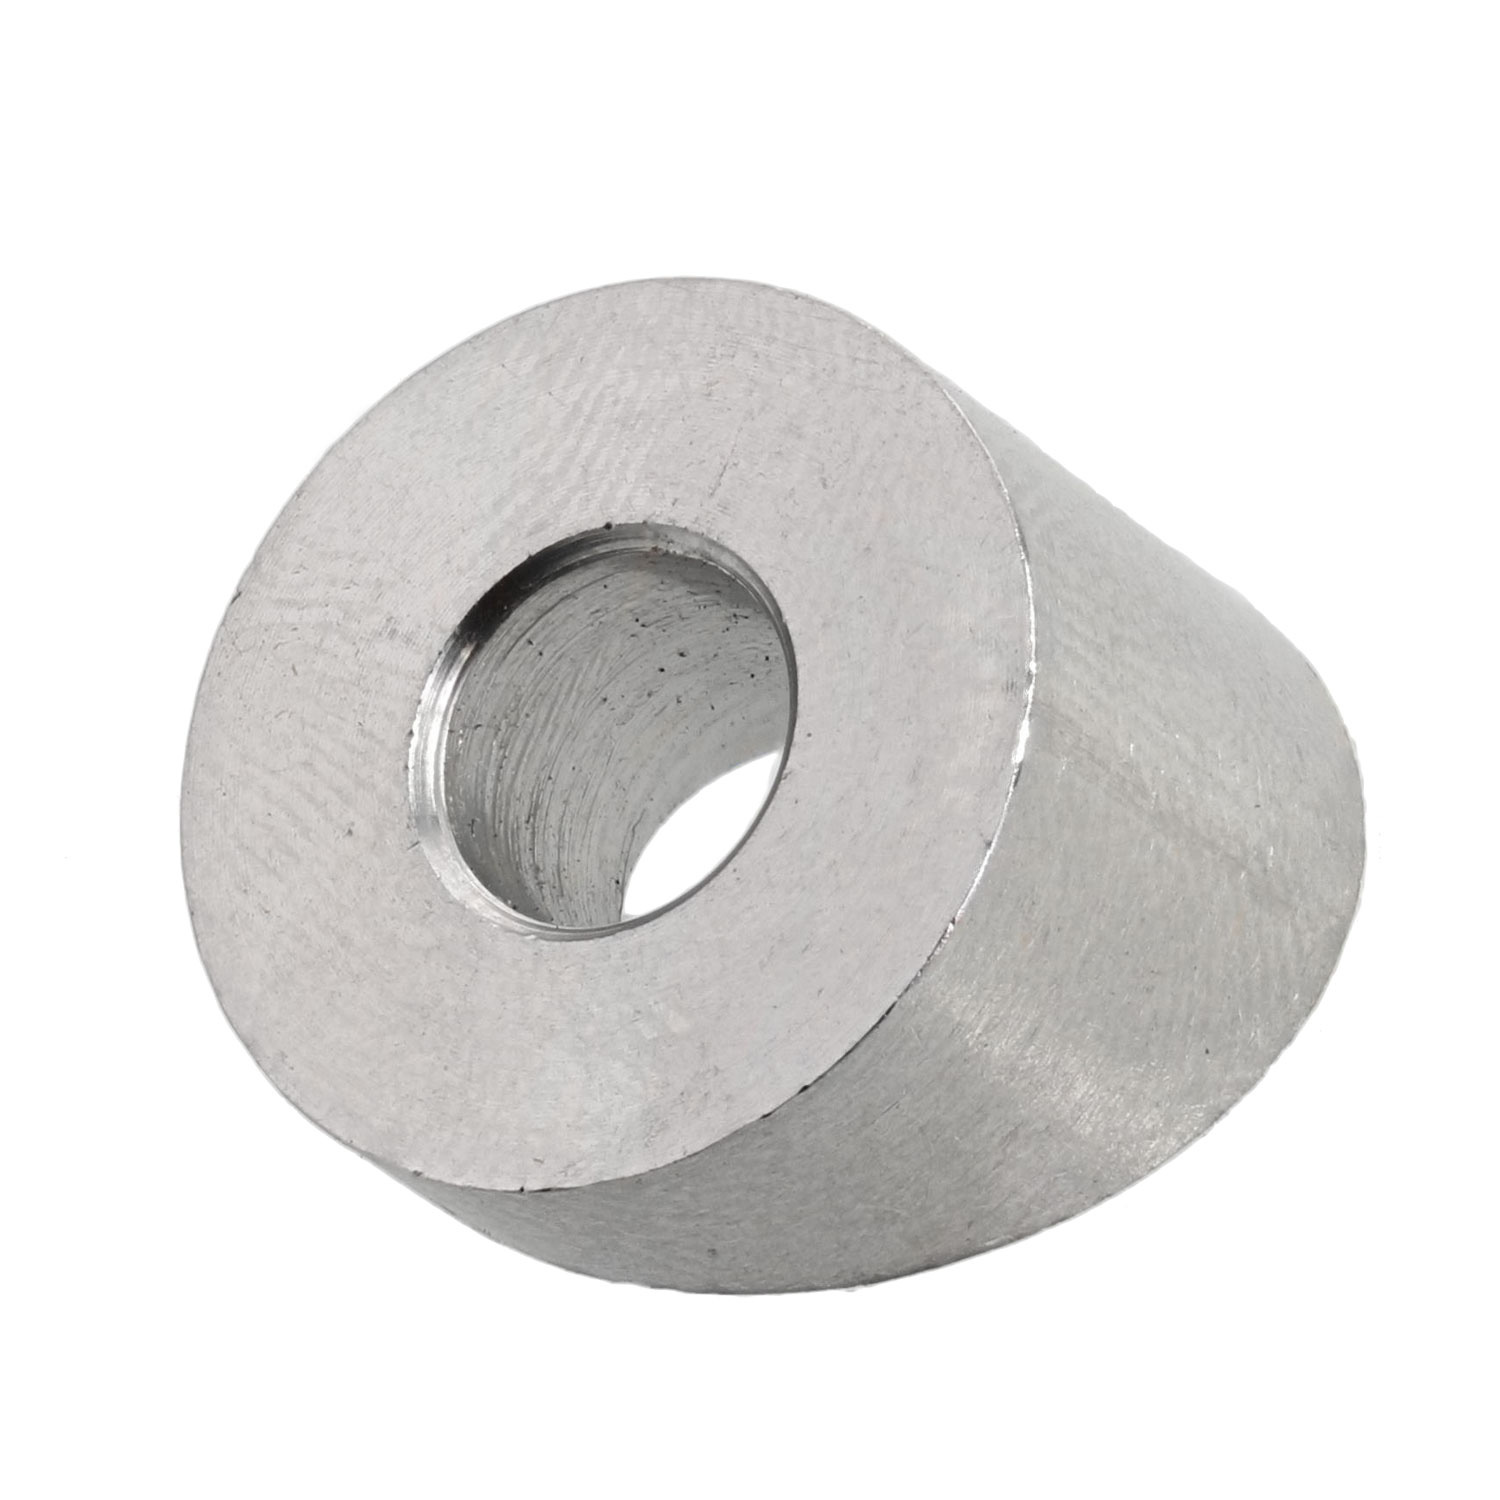 "3/8"" Grade 316 Stainless Steel Angle Washer Image 1"